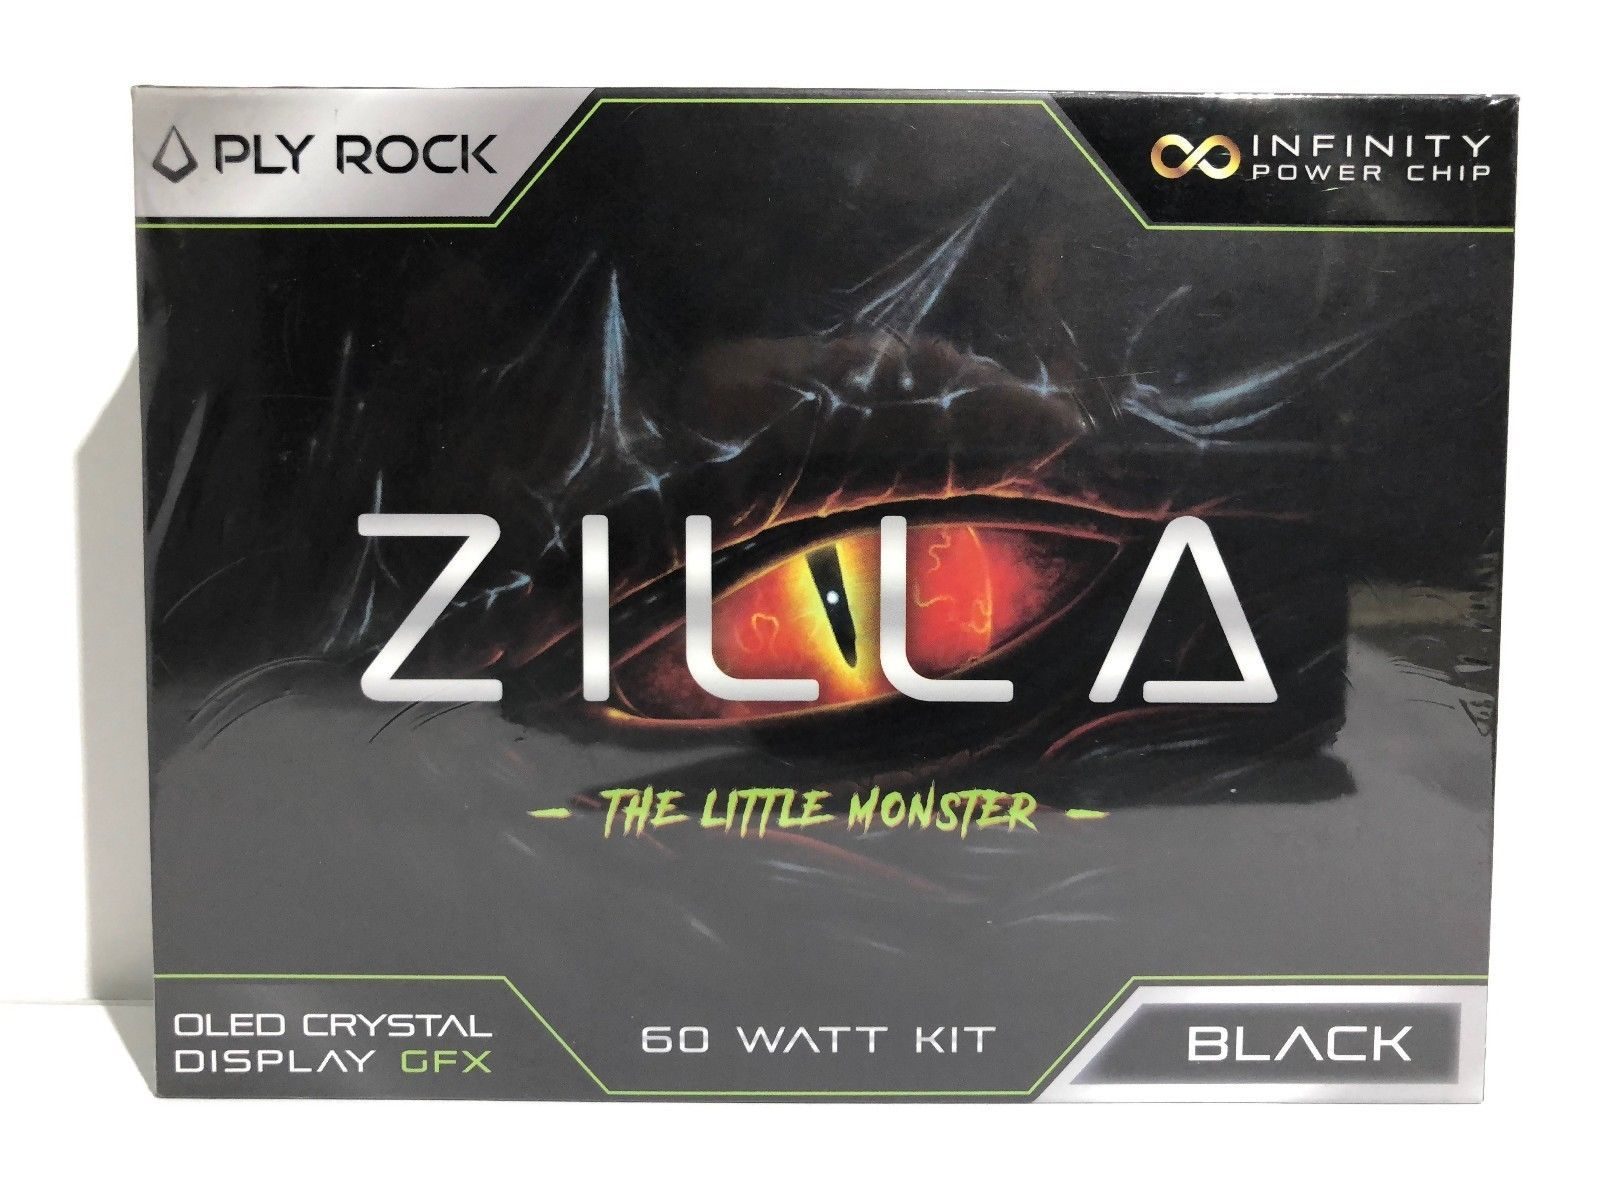 Ply Rock Zilla 60W Kit (Authentic) (eBay Link) | Gadgets and